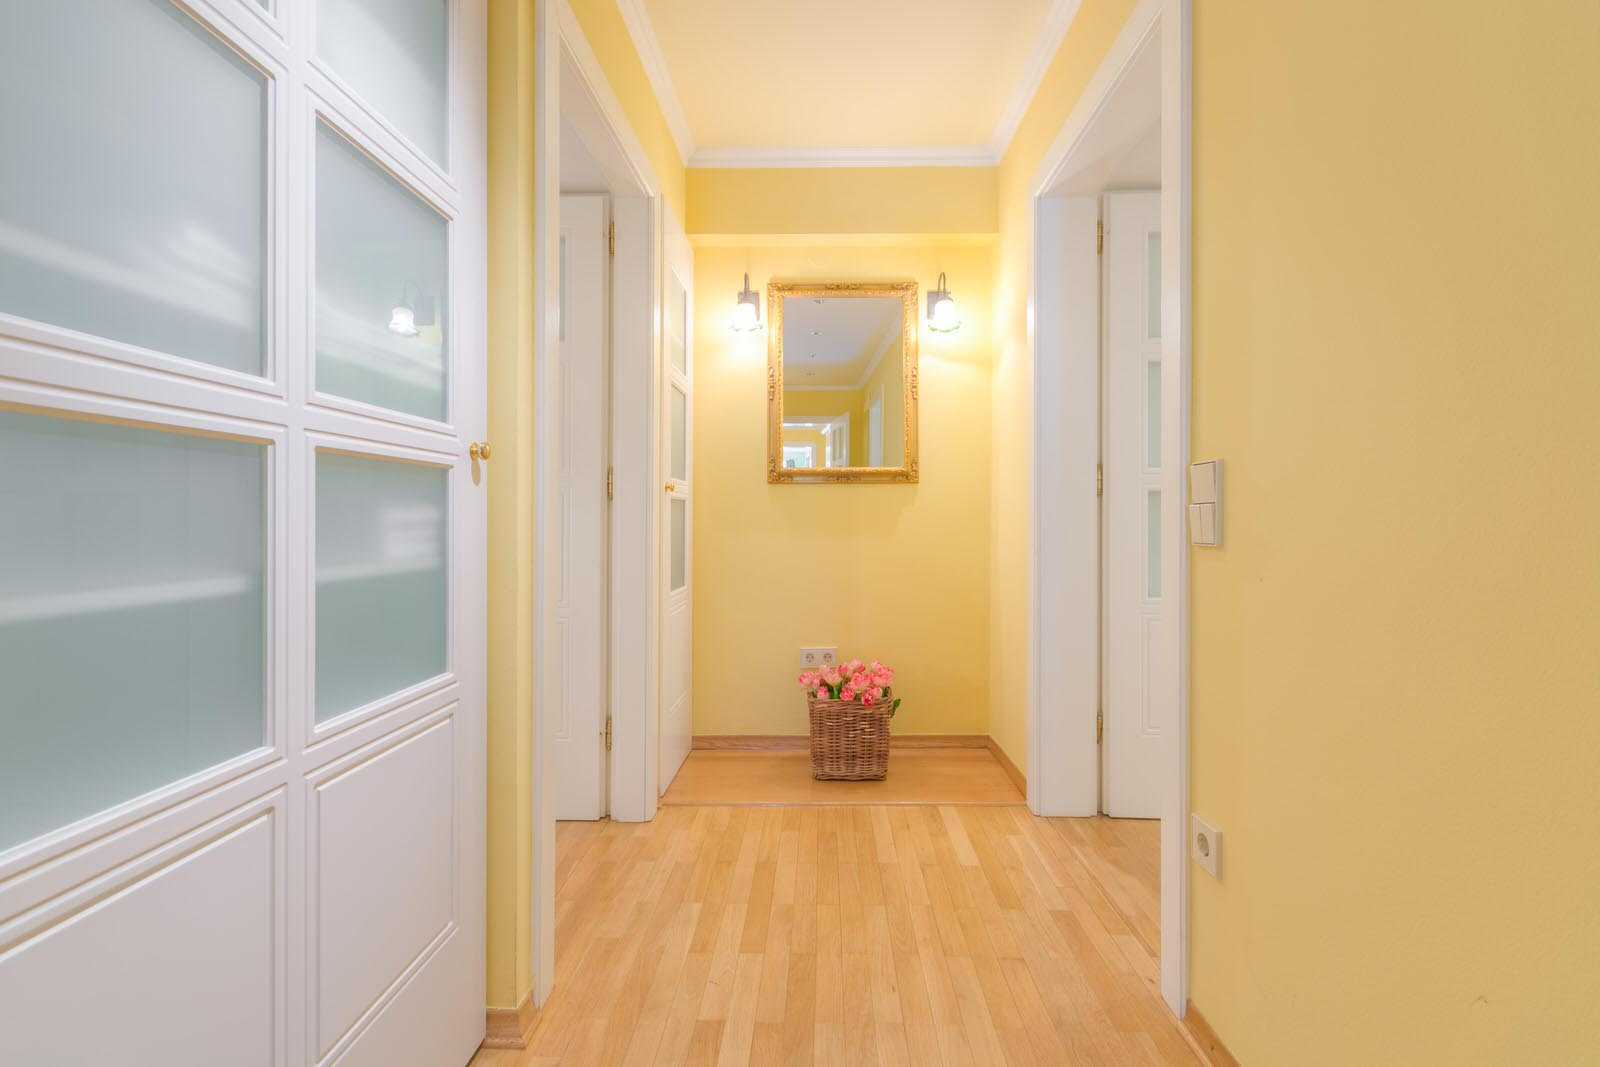 The hallways have concealed closets.